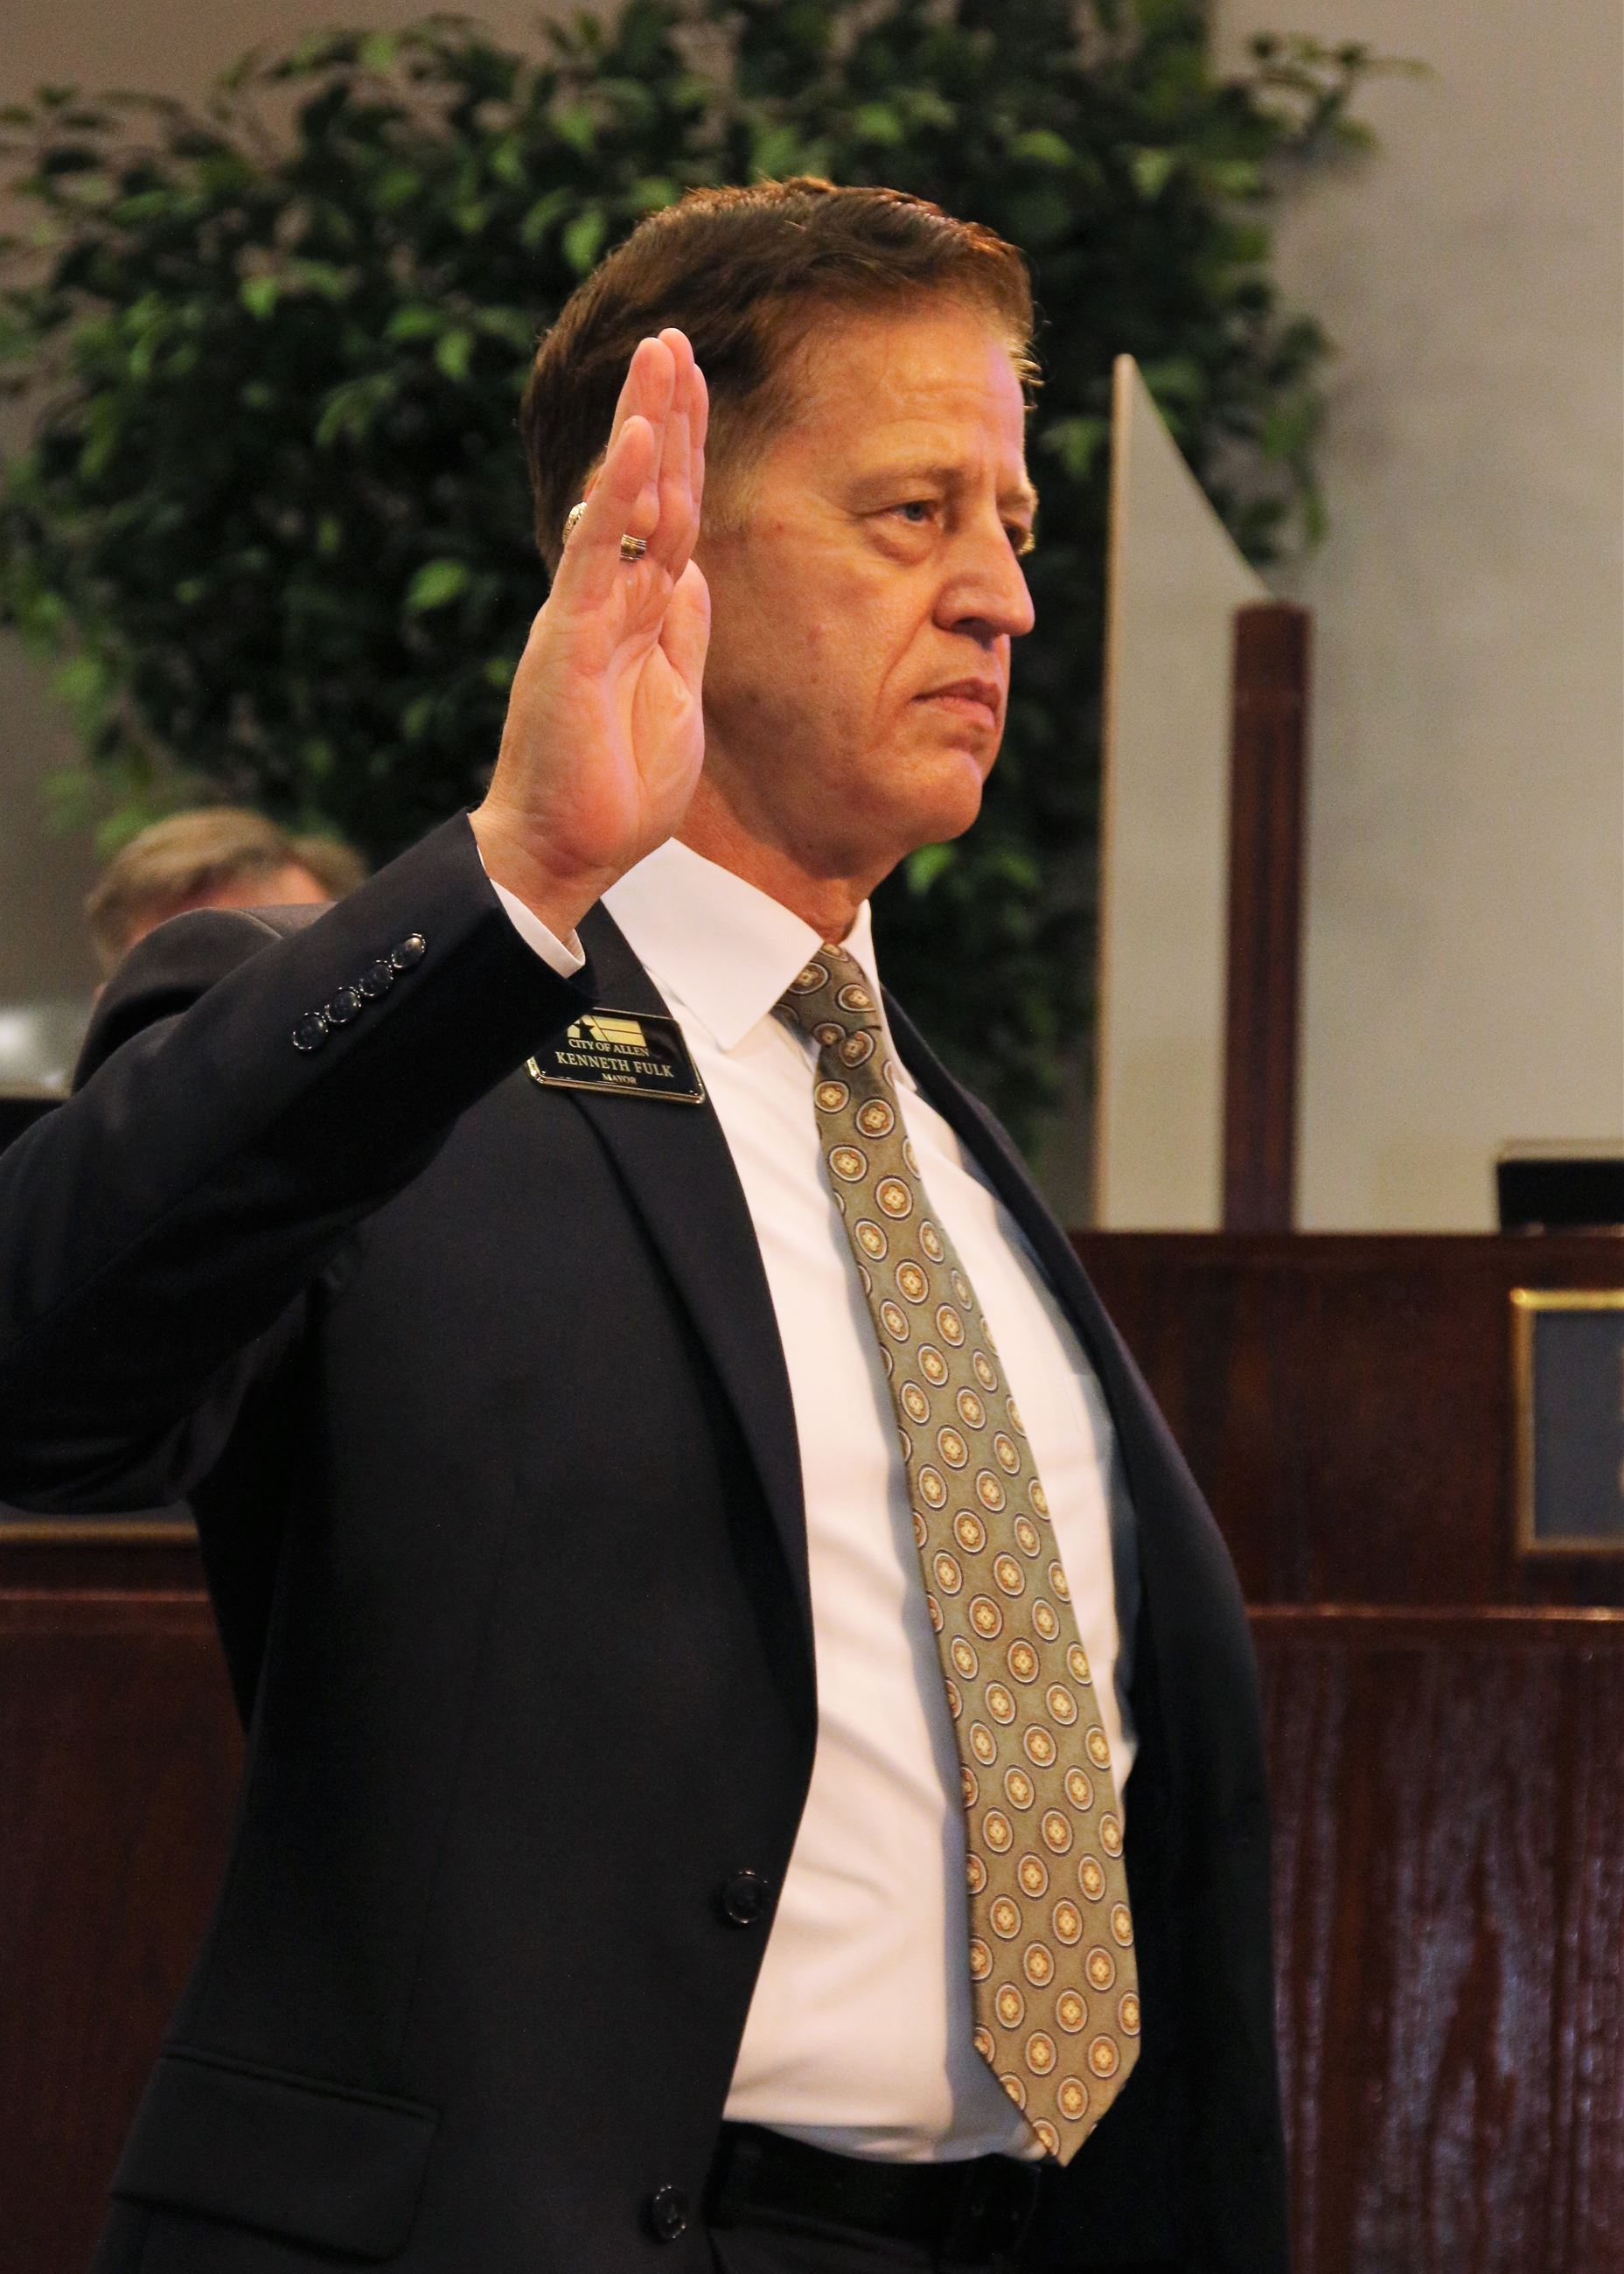 Mayor Ken Fulk holds right hand in the air while sworn in as Allen mayor